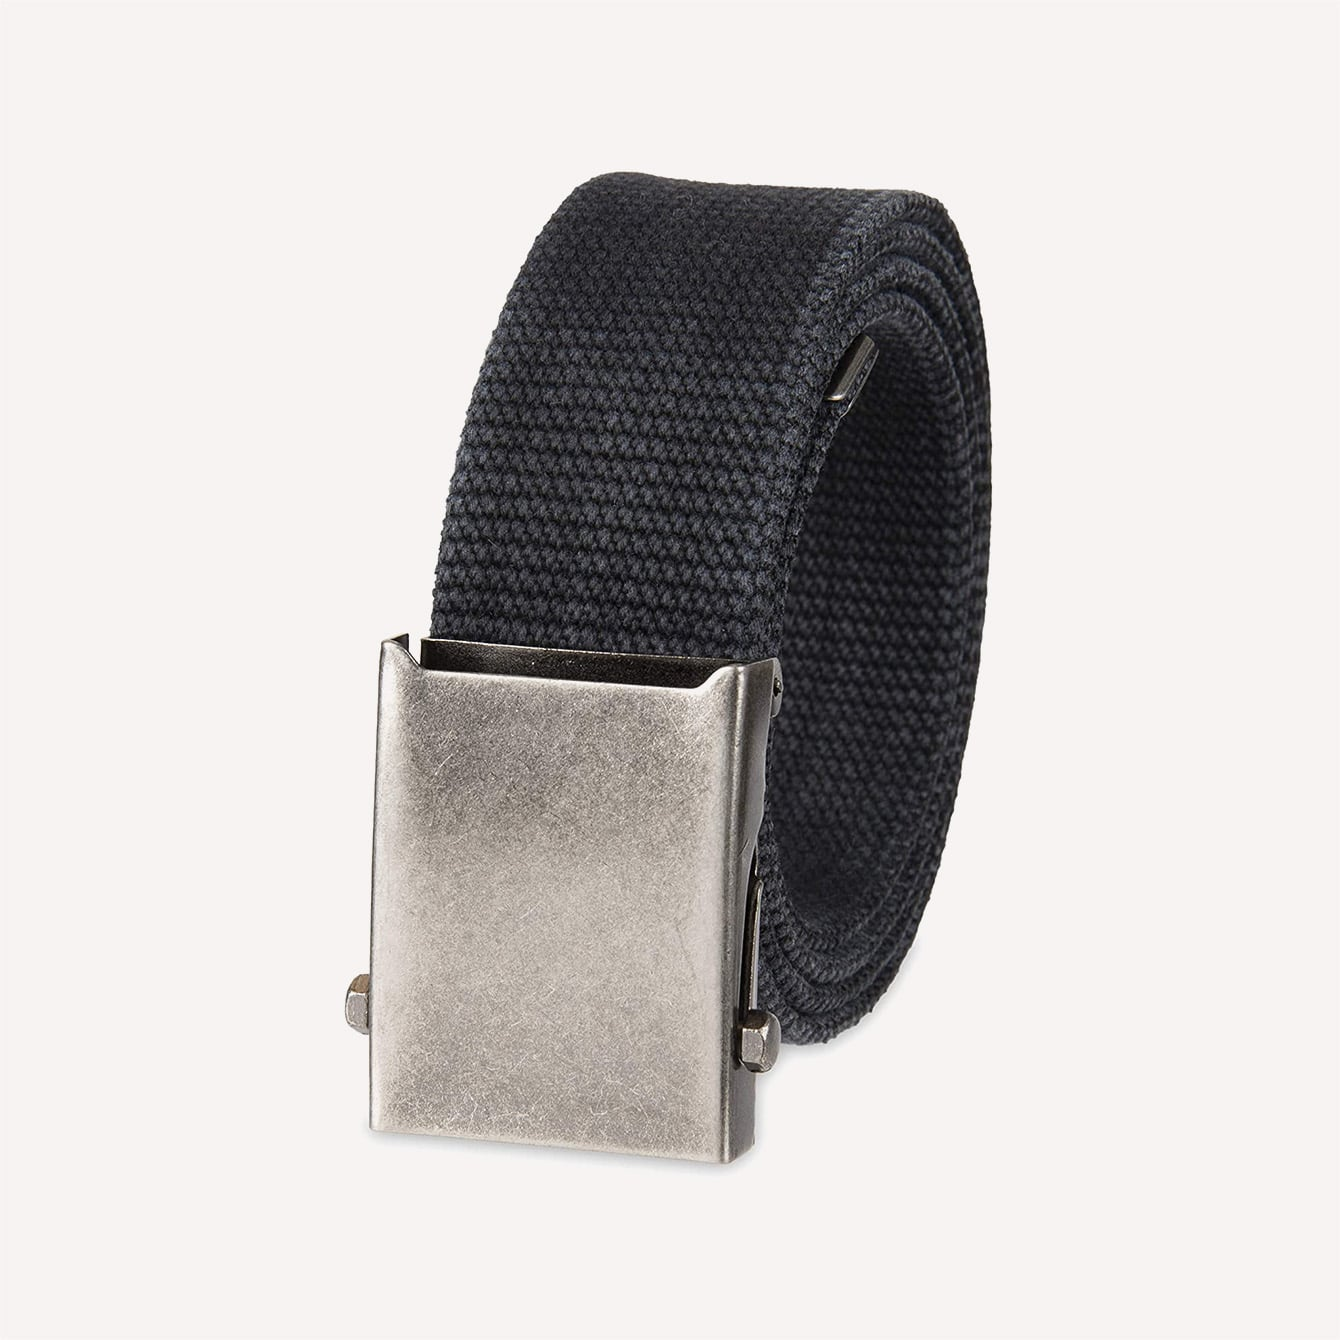 Columbia Men s Military Belt Adjustable Cotton Strap and Metal Buckle